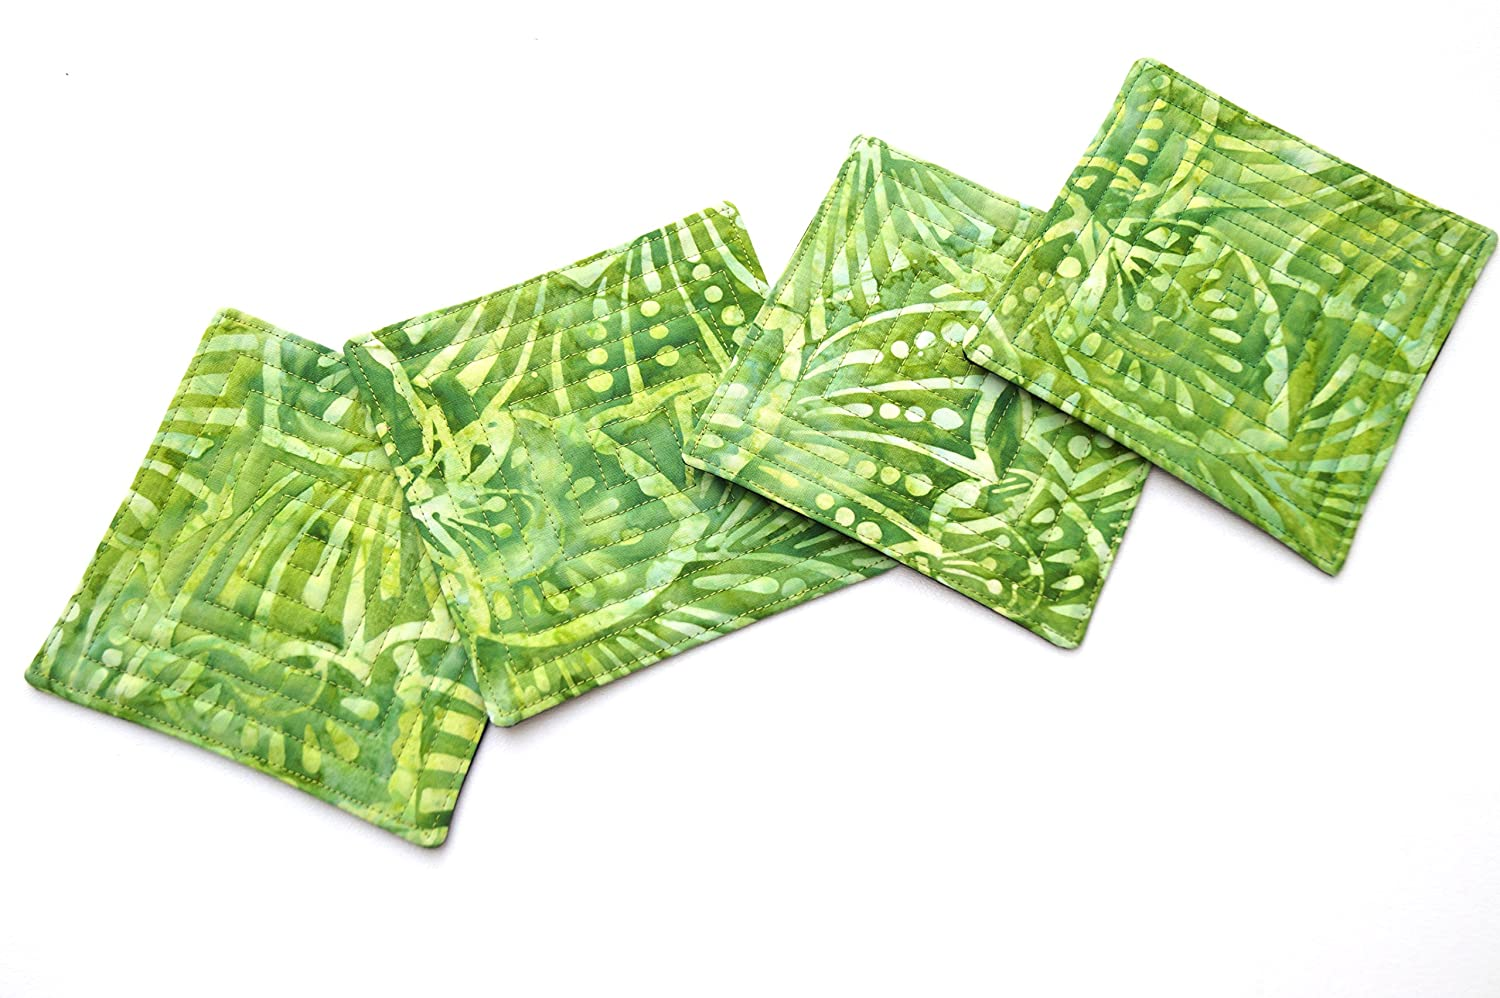 Batik Quilted Fabric Coaster Set in Shades of Green